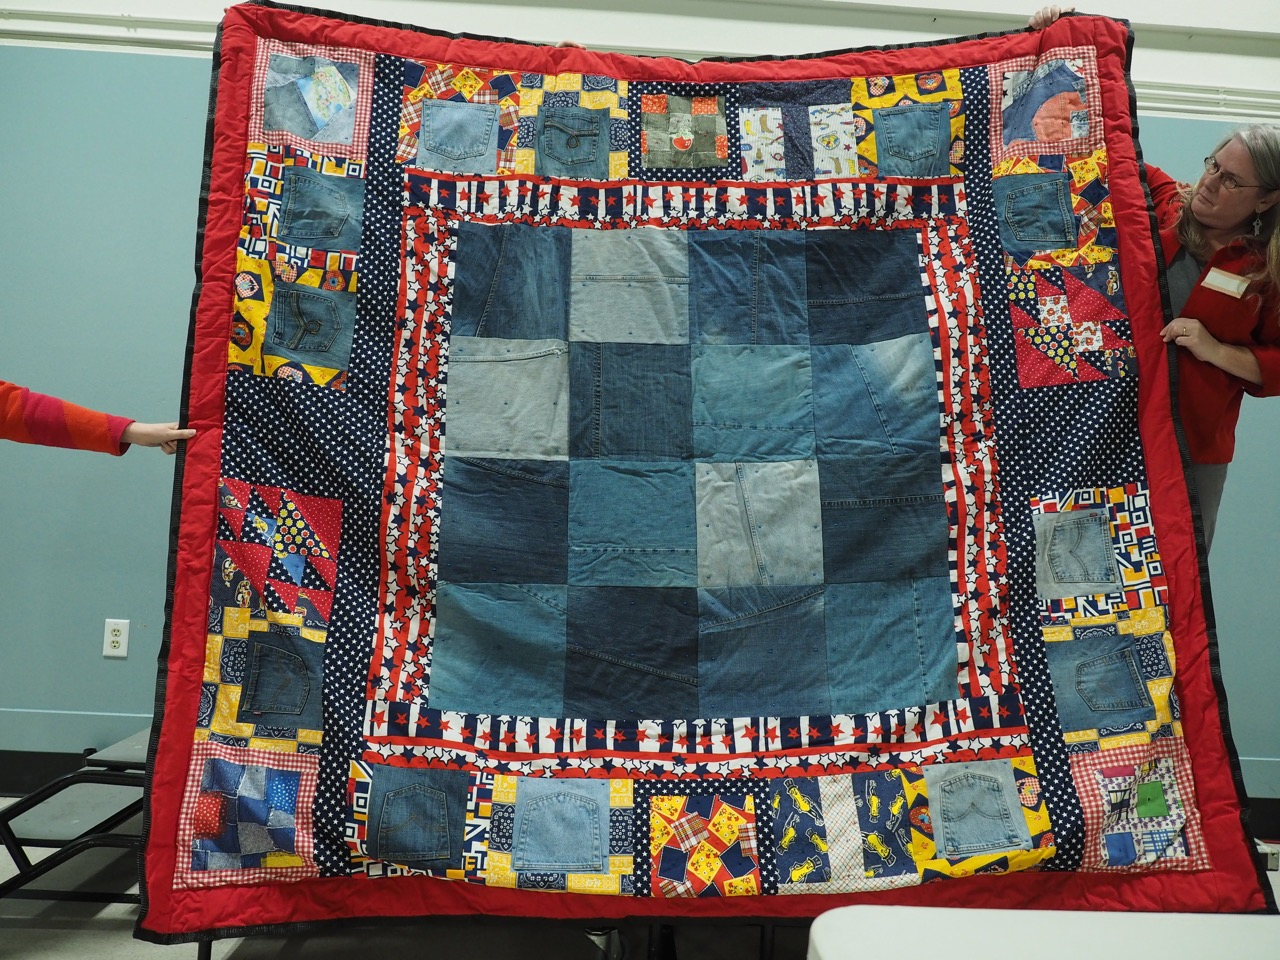 The Ultimate Bicentennial Picnic Quilt by Suzanne Twining